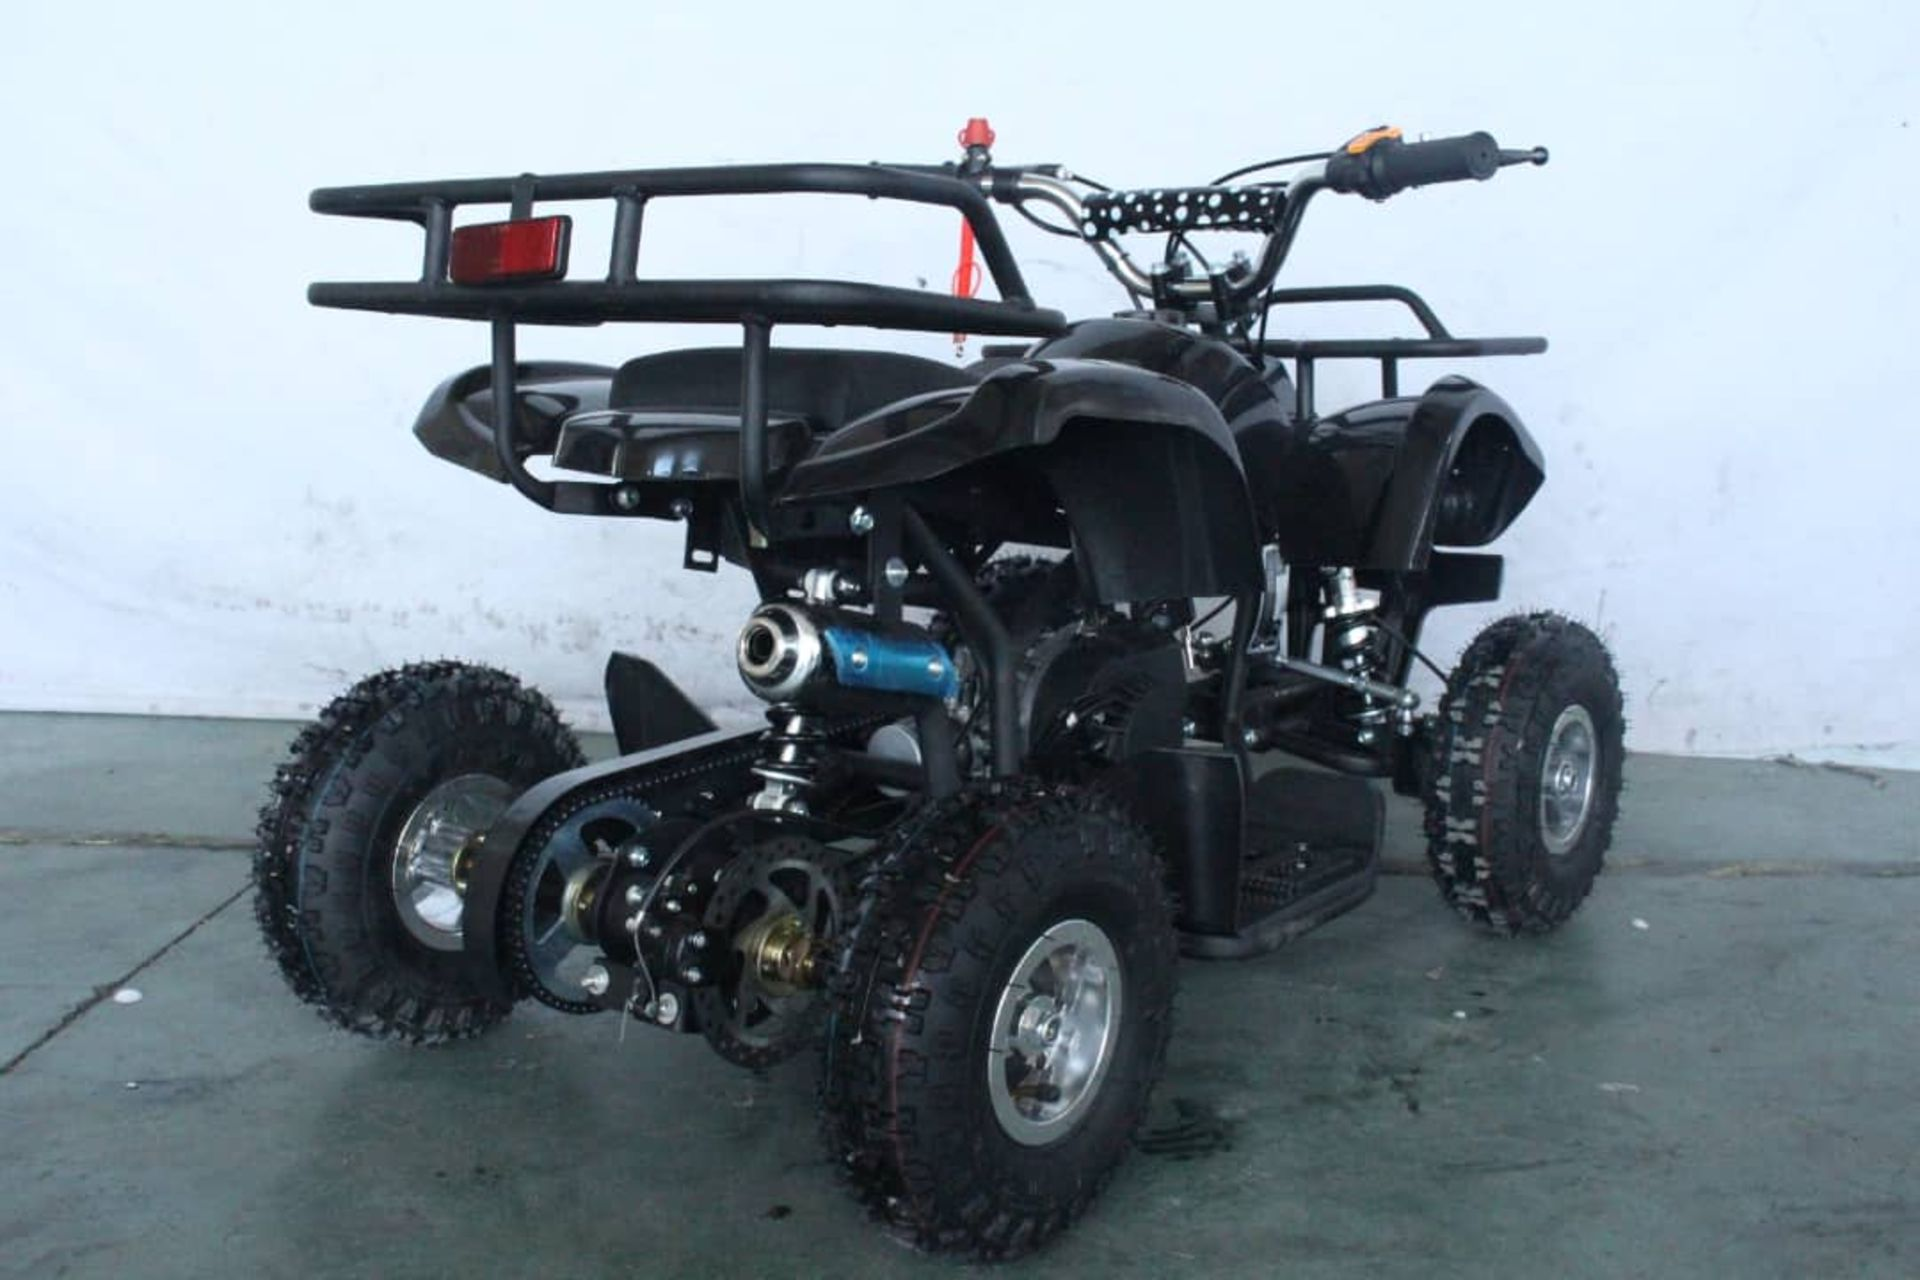 + VAT Brand New 49cc Hawk Mini Quad Bike - Colours May Vary - Full Front And Rear Suspension - Disk - Image 5 of 9